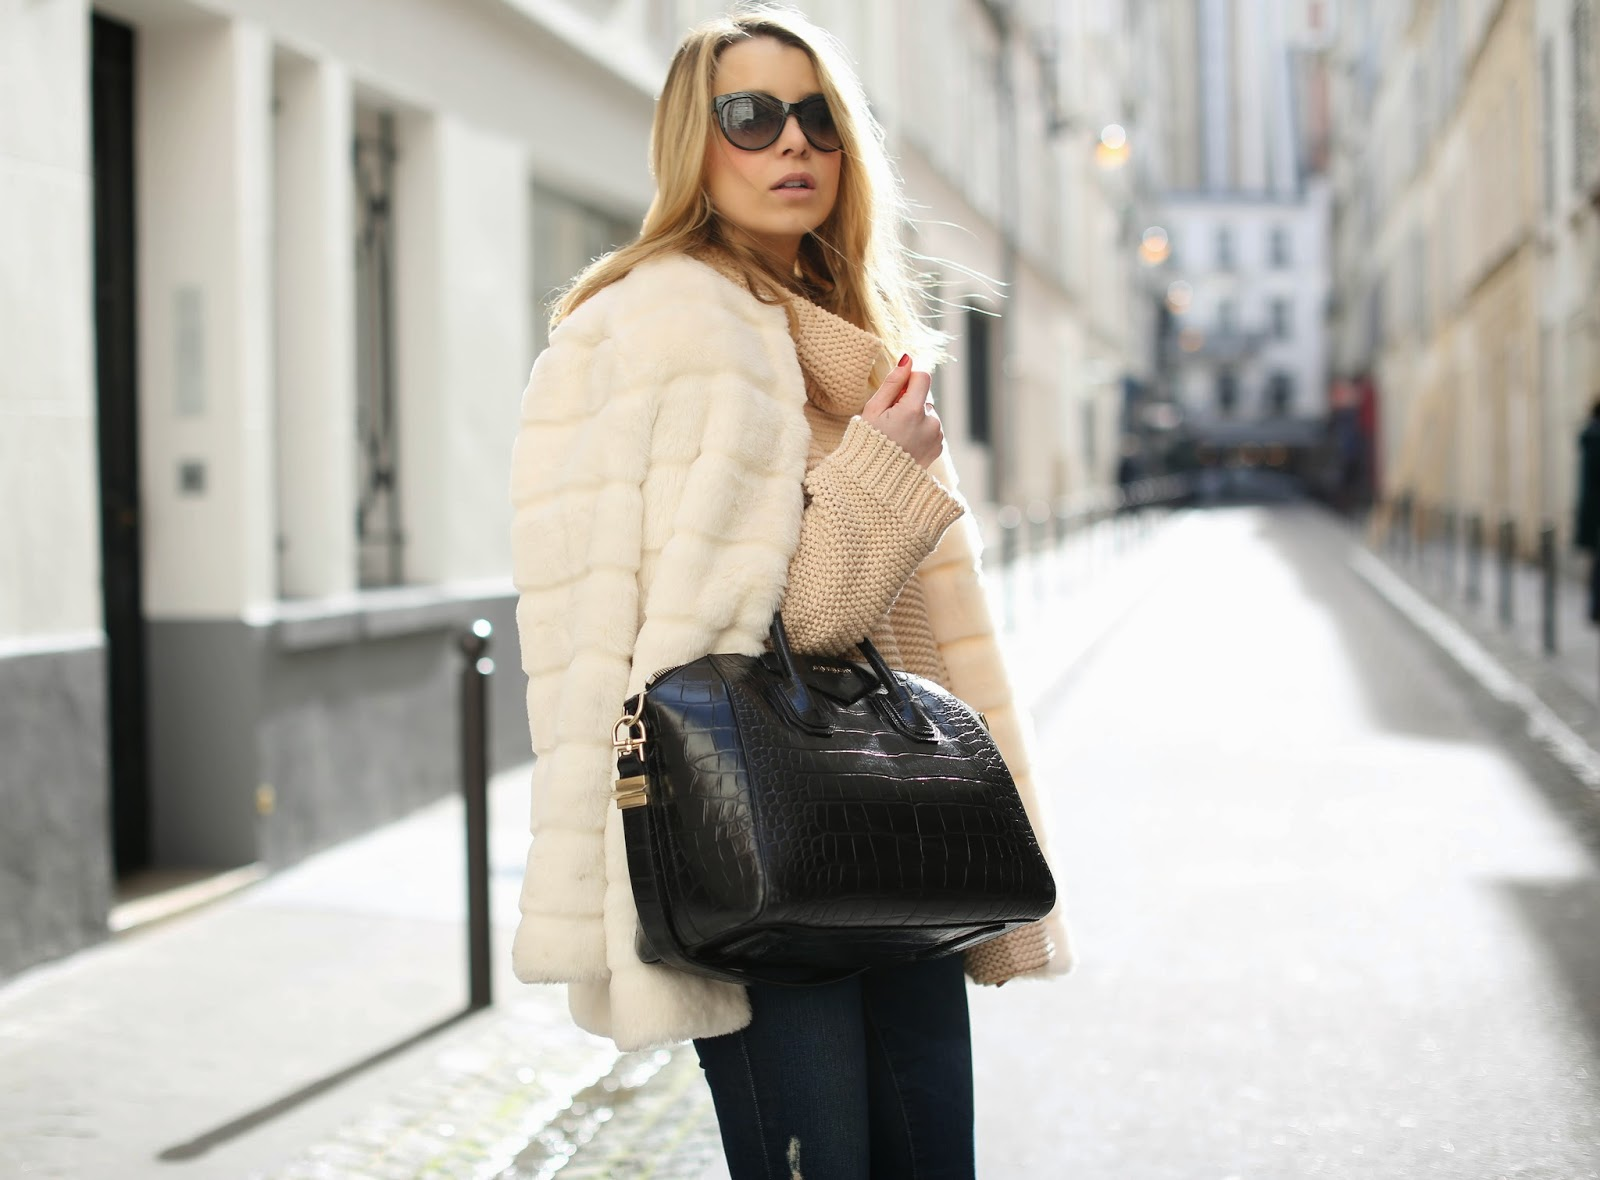 casual, zara, chloé, ripped jeans, givenchy, streetstyle, fashion blogger